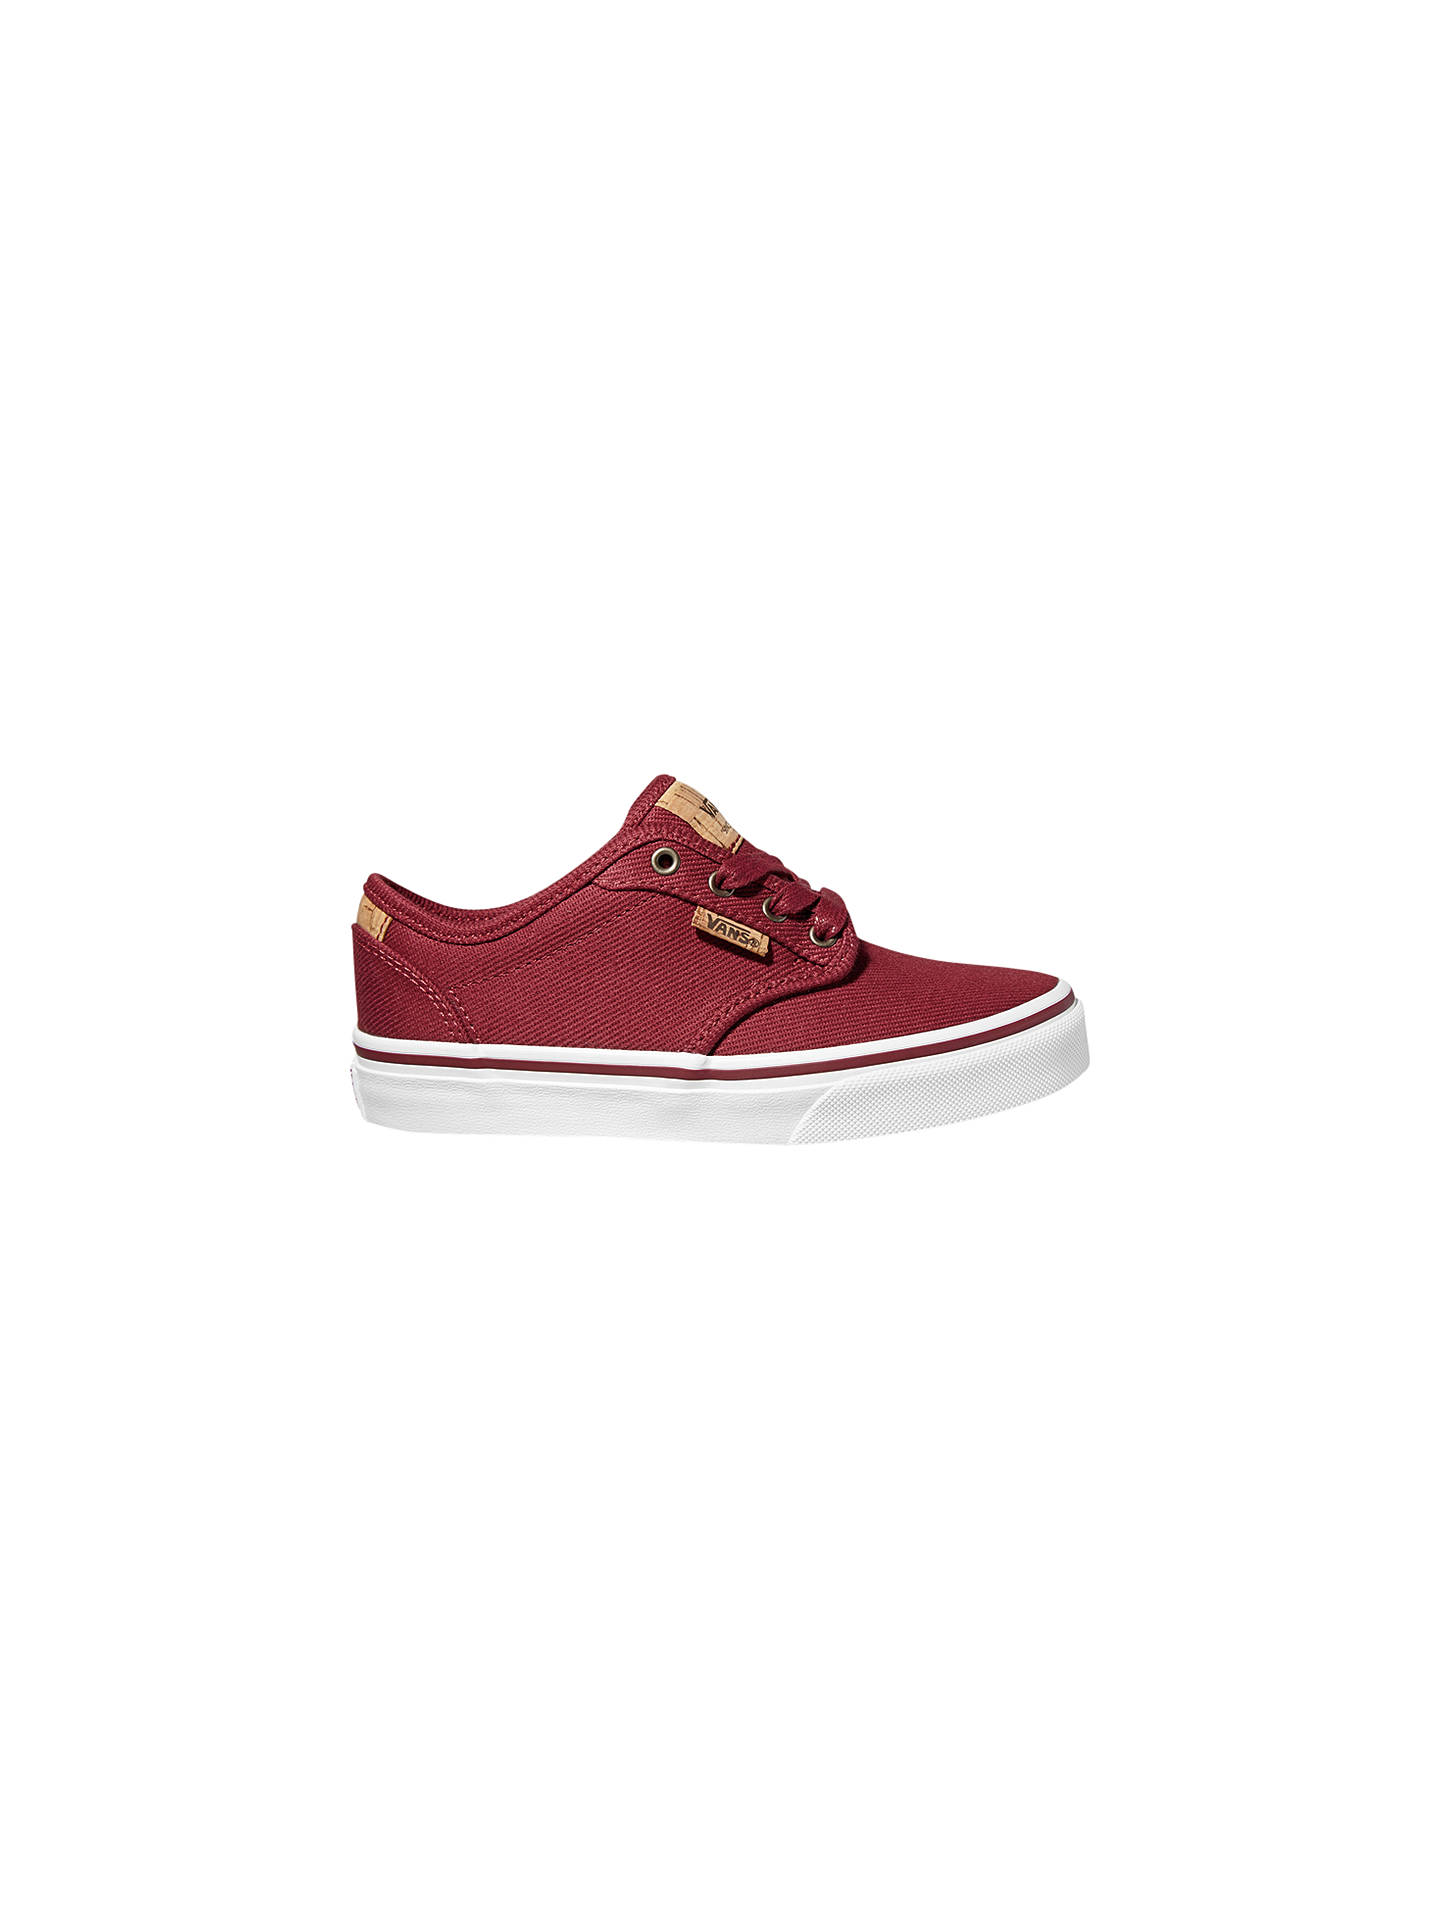 26bcdaf065 Vans Children s Atwood Deluxe Washed Twill Lace-Up Shoes at John ...